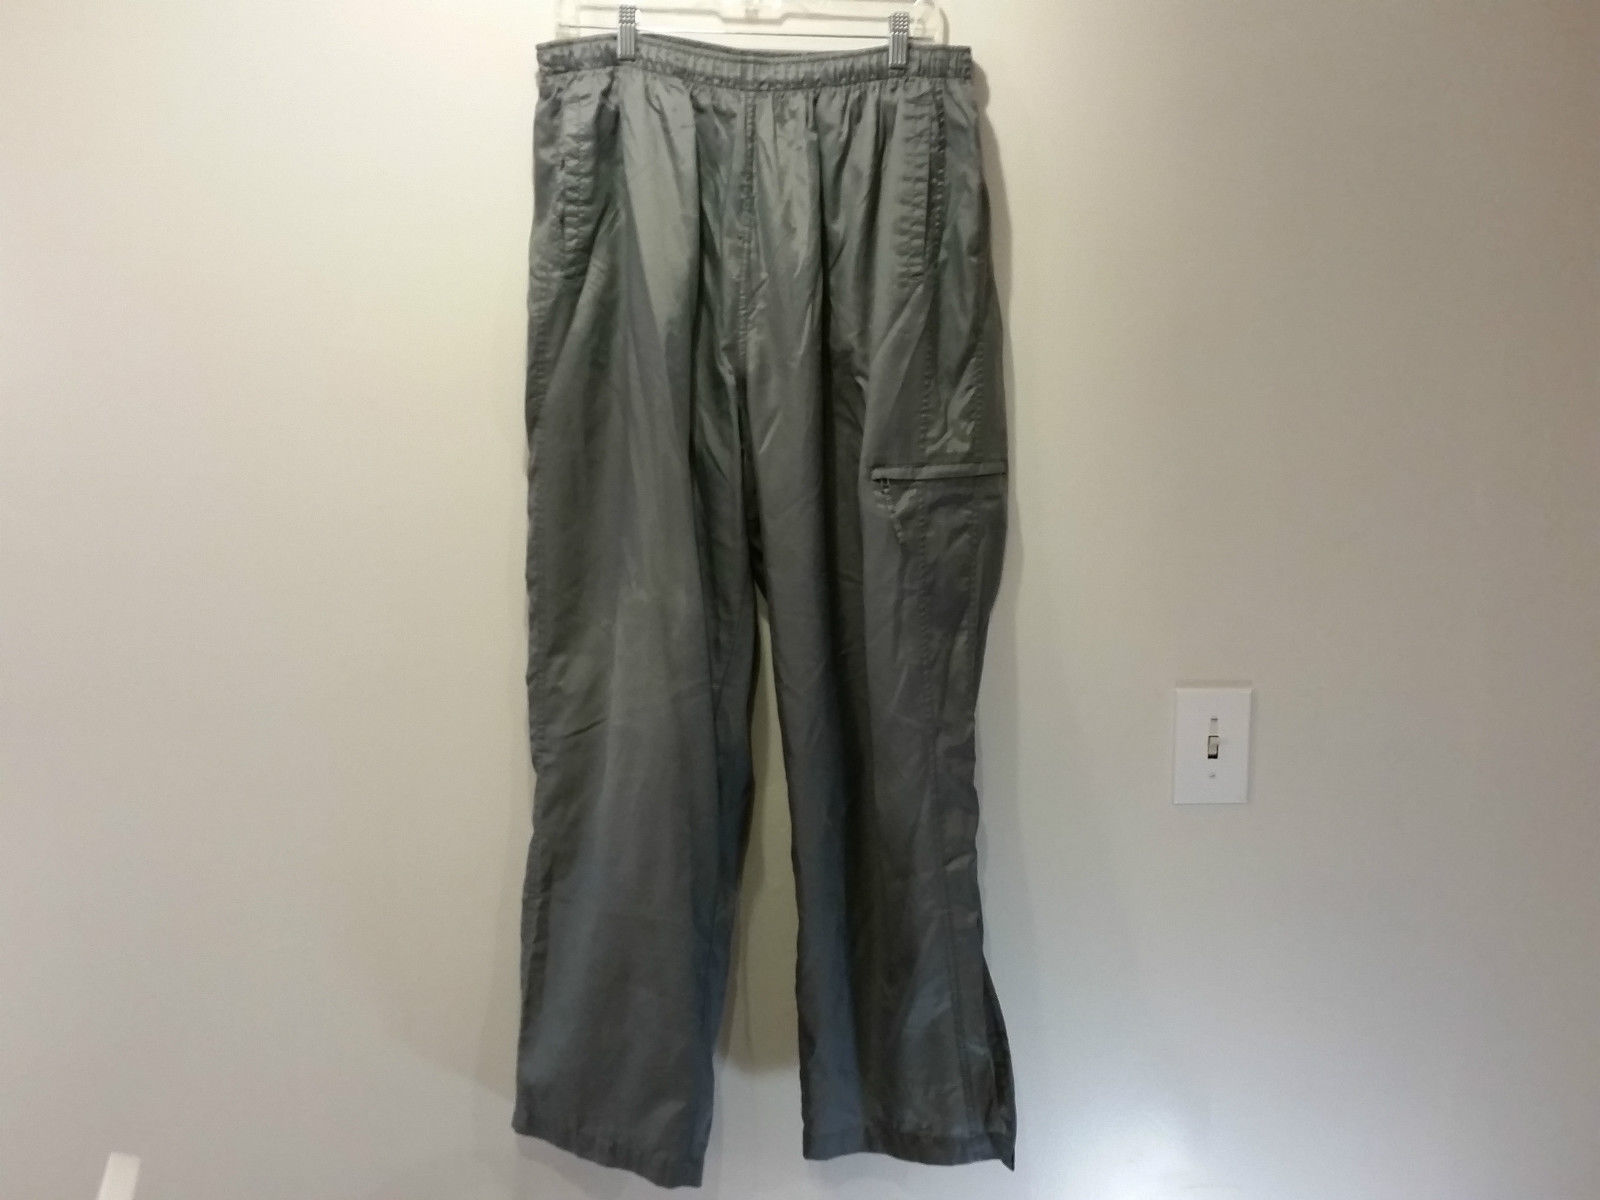 Champs Size XL Gray Stretchy Pants Fully Lined Zippers on Bottom Sides